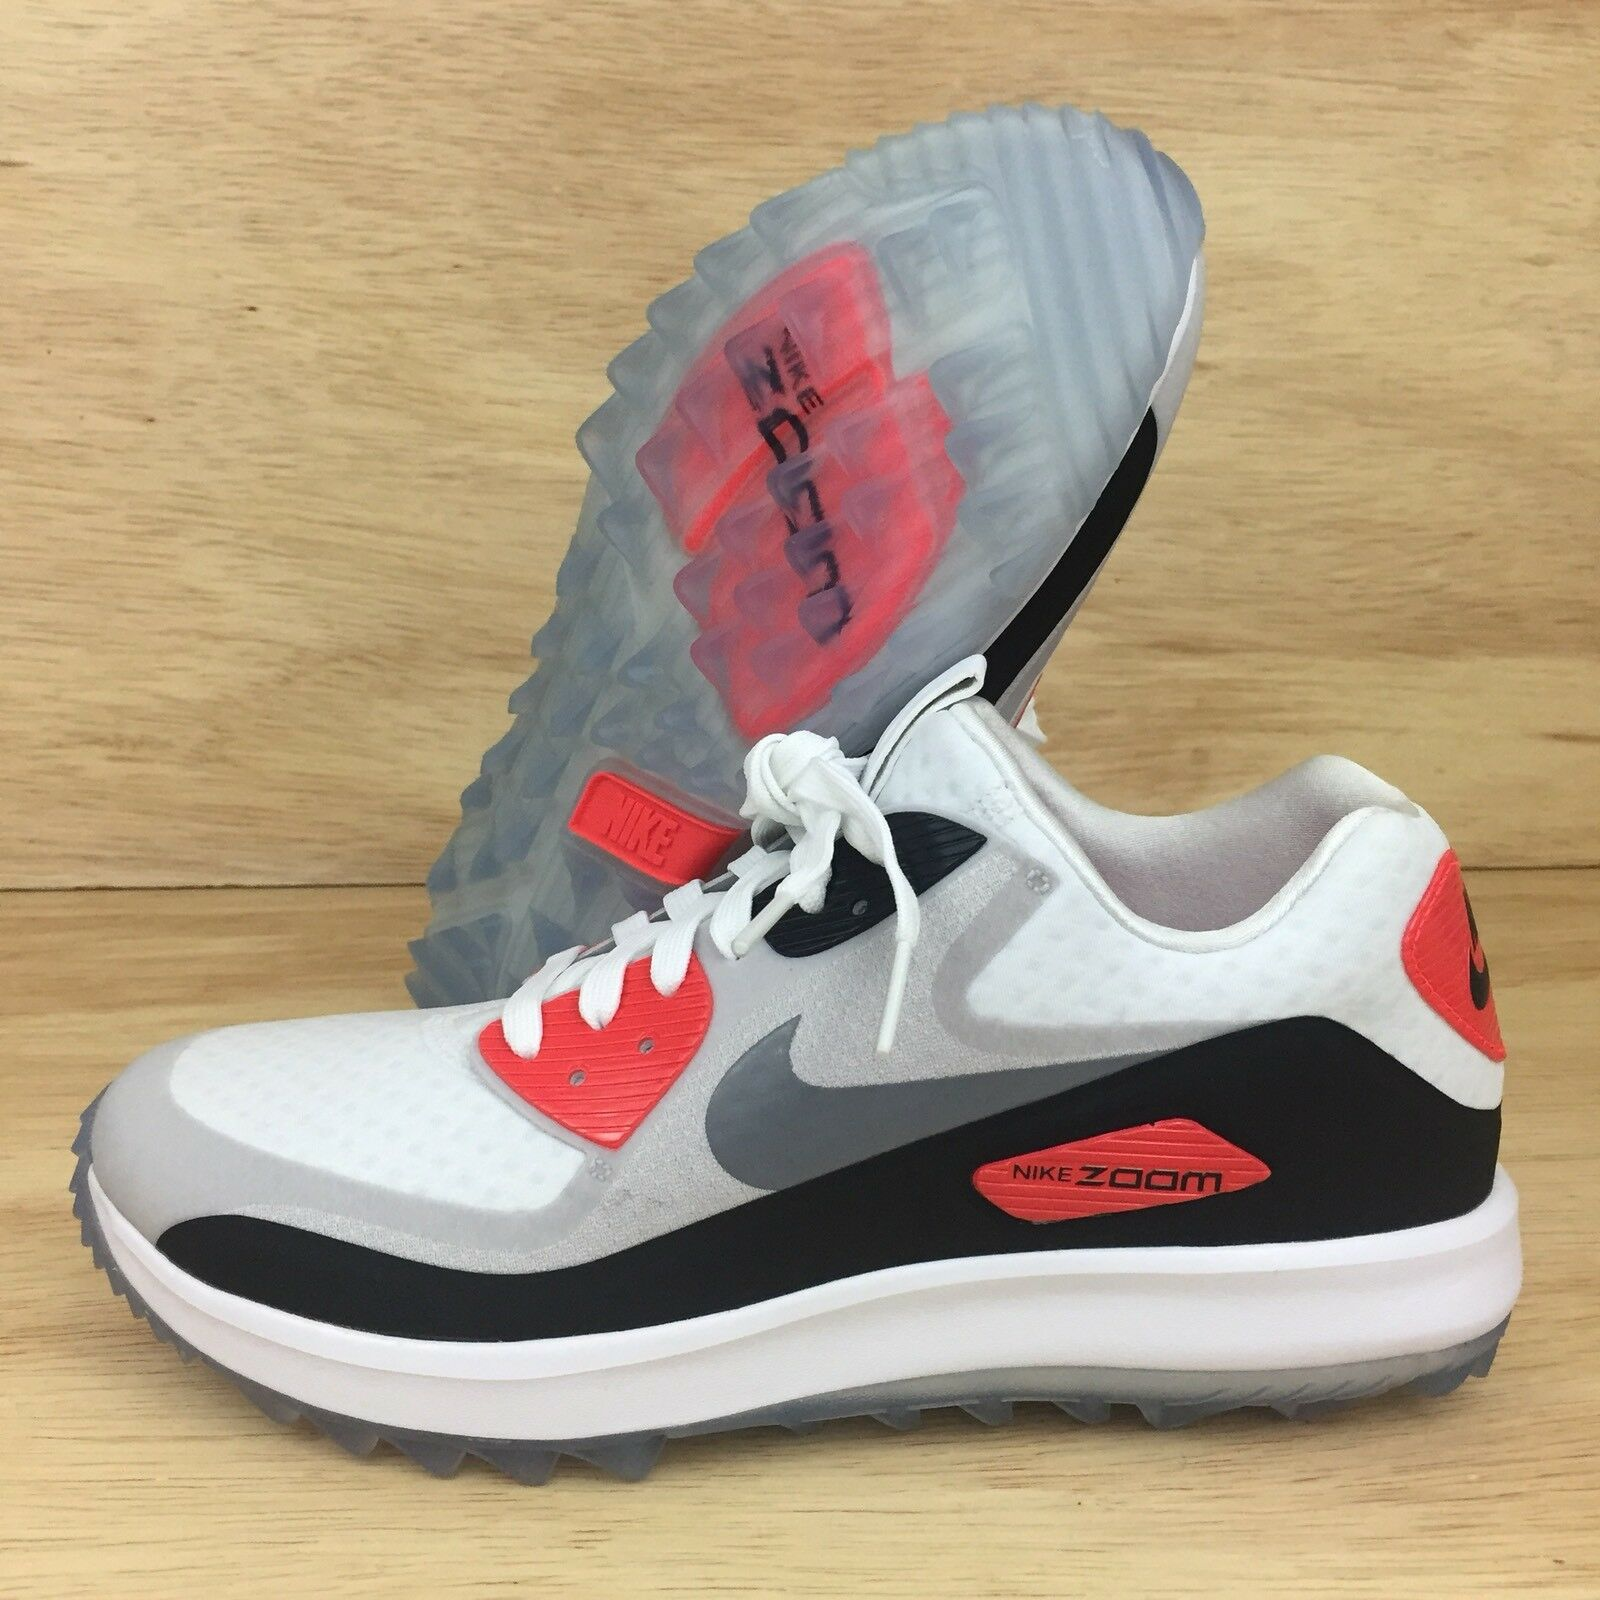 NIKE AIR ZOOM 90 IT GOLF WOMENS INFRARED 844648 100 RORY MCILROY SZ 10.5